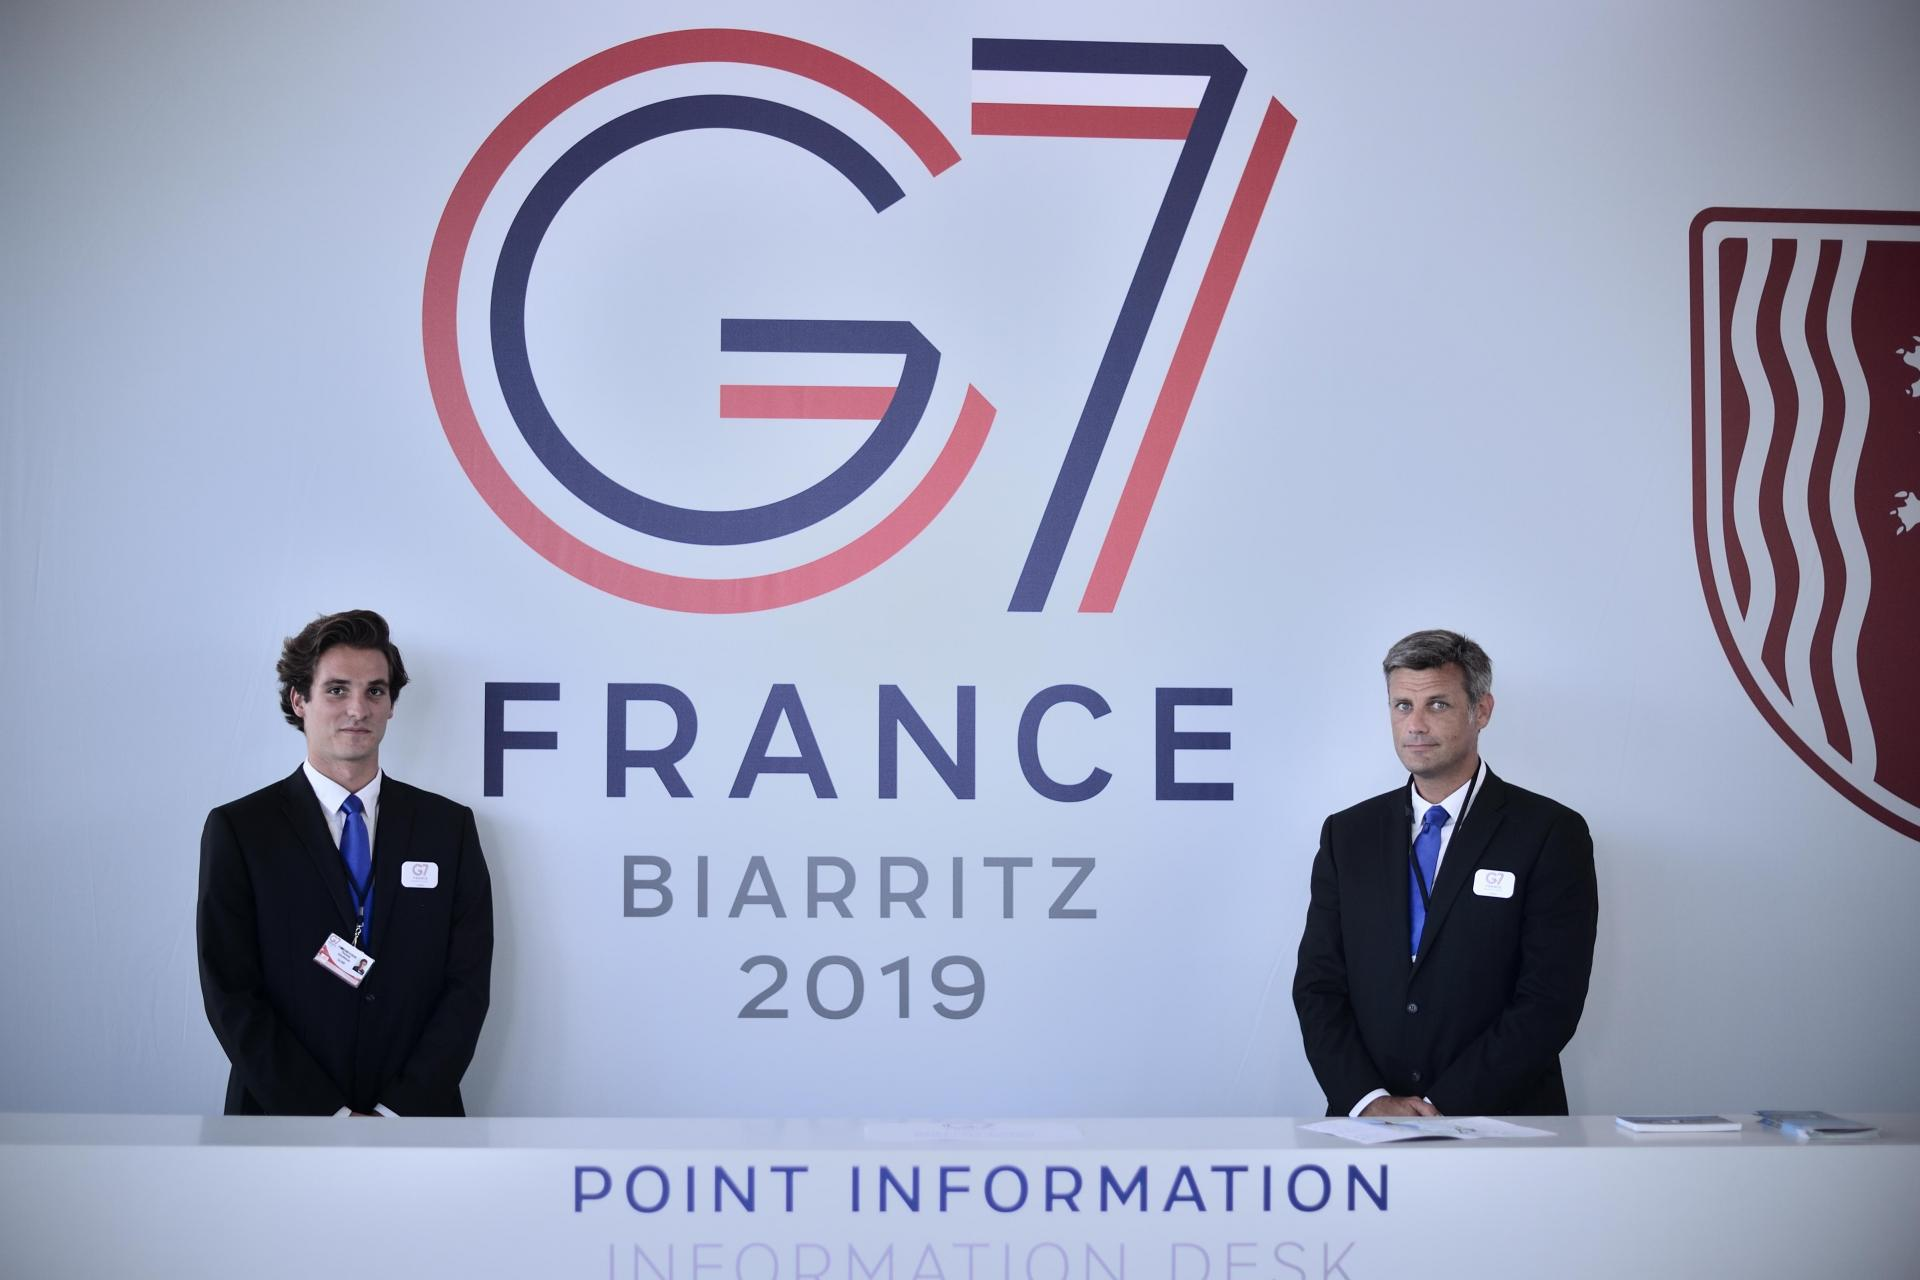 The press desk at the G7 summit in Biarritz. Leaders from the world's seven largest economies will hold a round of talks in the French town on Saturday. Photo: AFP